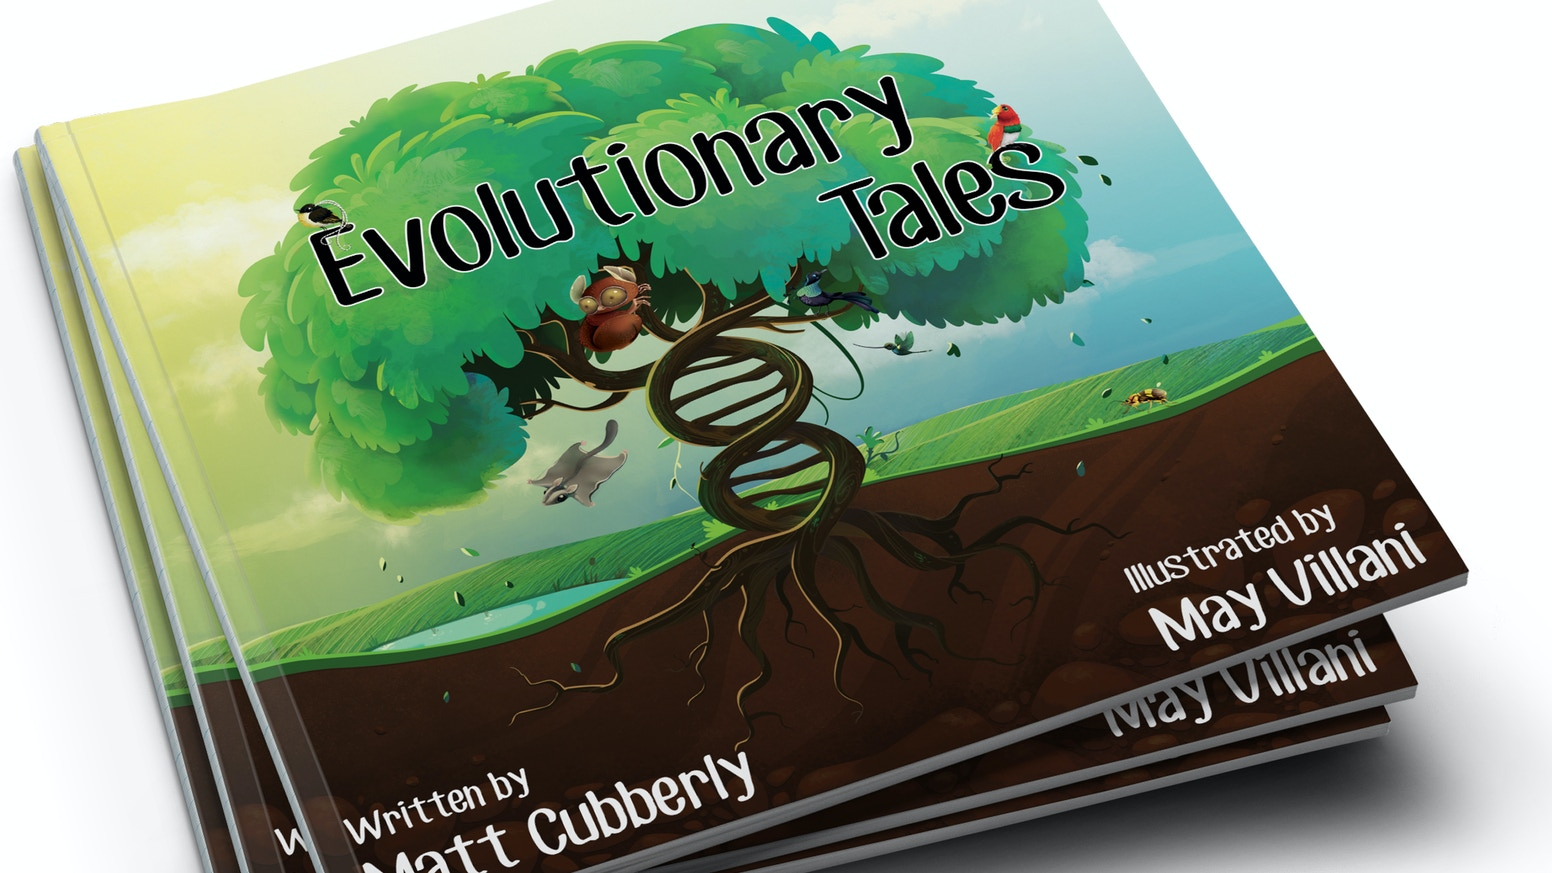 Evolutionary Tales is a children's book that teaches evolution through 10 poems focusing on the wildest-evolved creatures of our world!